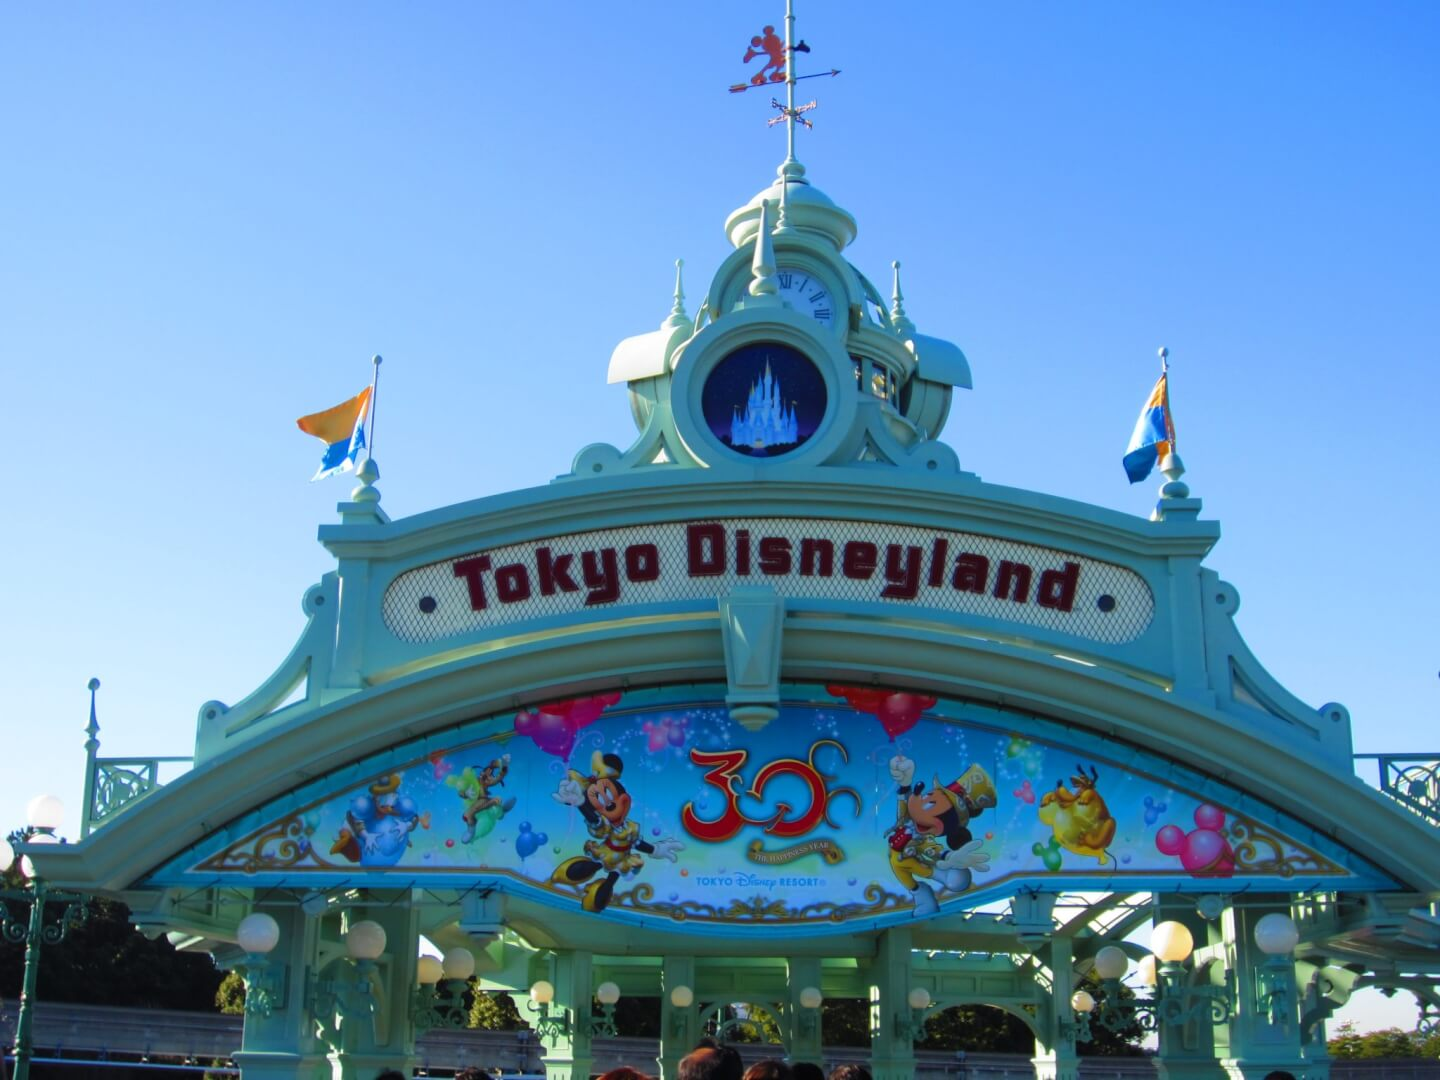 Tokyo disney resort may be adding a new japanese themed park for this would be the resorts most expensive expansion since tokyo disneysea opened in 2001 which cost around 340 billion yen sciox Gallery